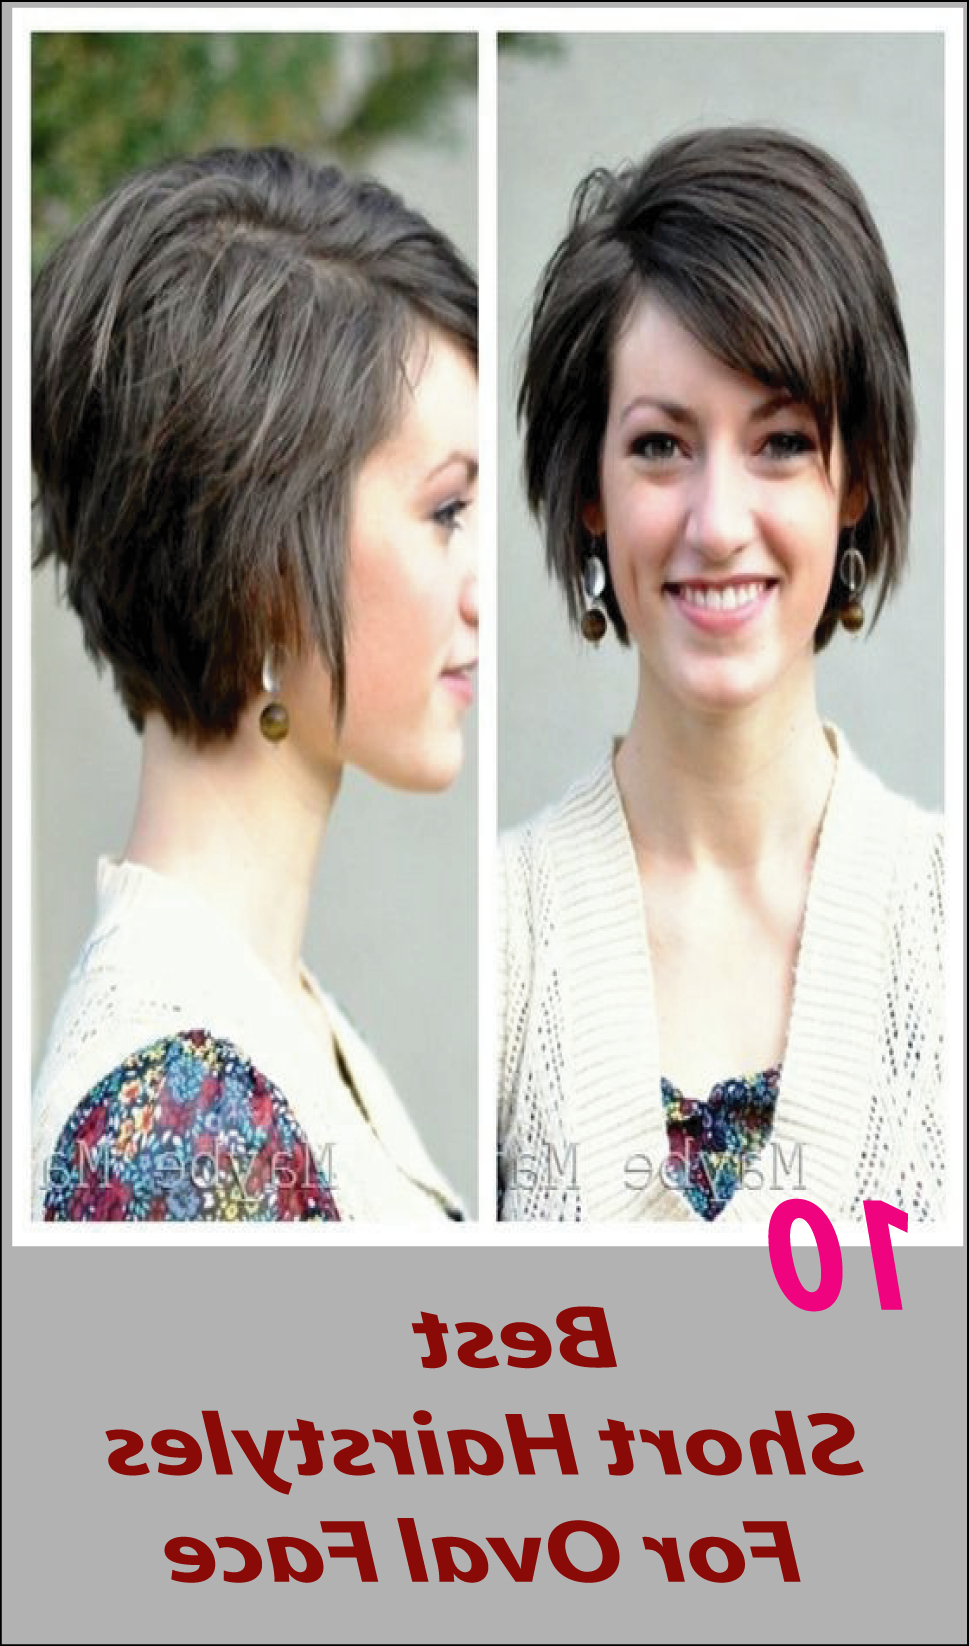 10 Best Short Hairstyles For Oval Face | Hair | Pinterest | Hair Inside Short Hairstyles Oval Face (View 1 of 25)